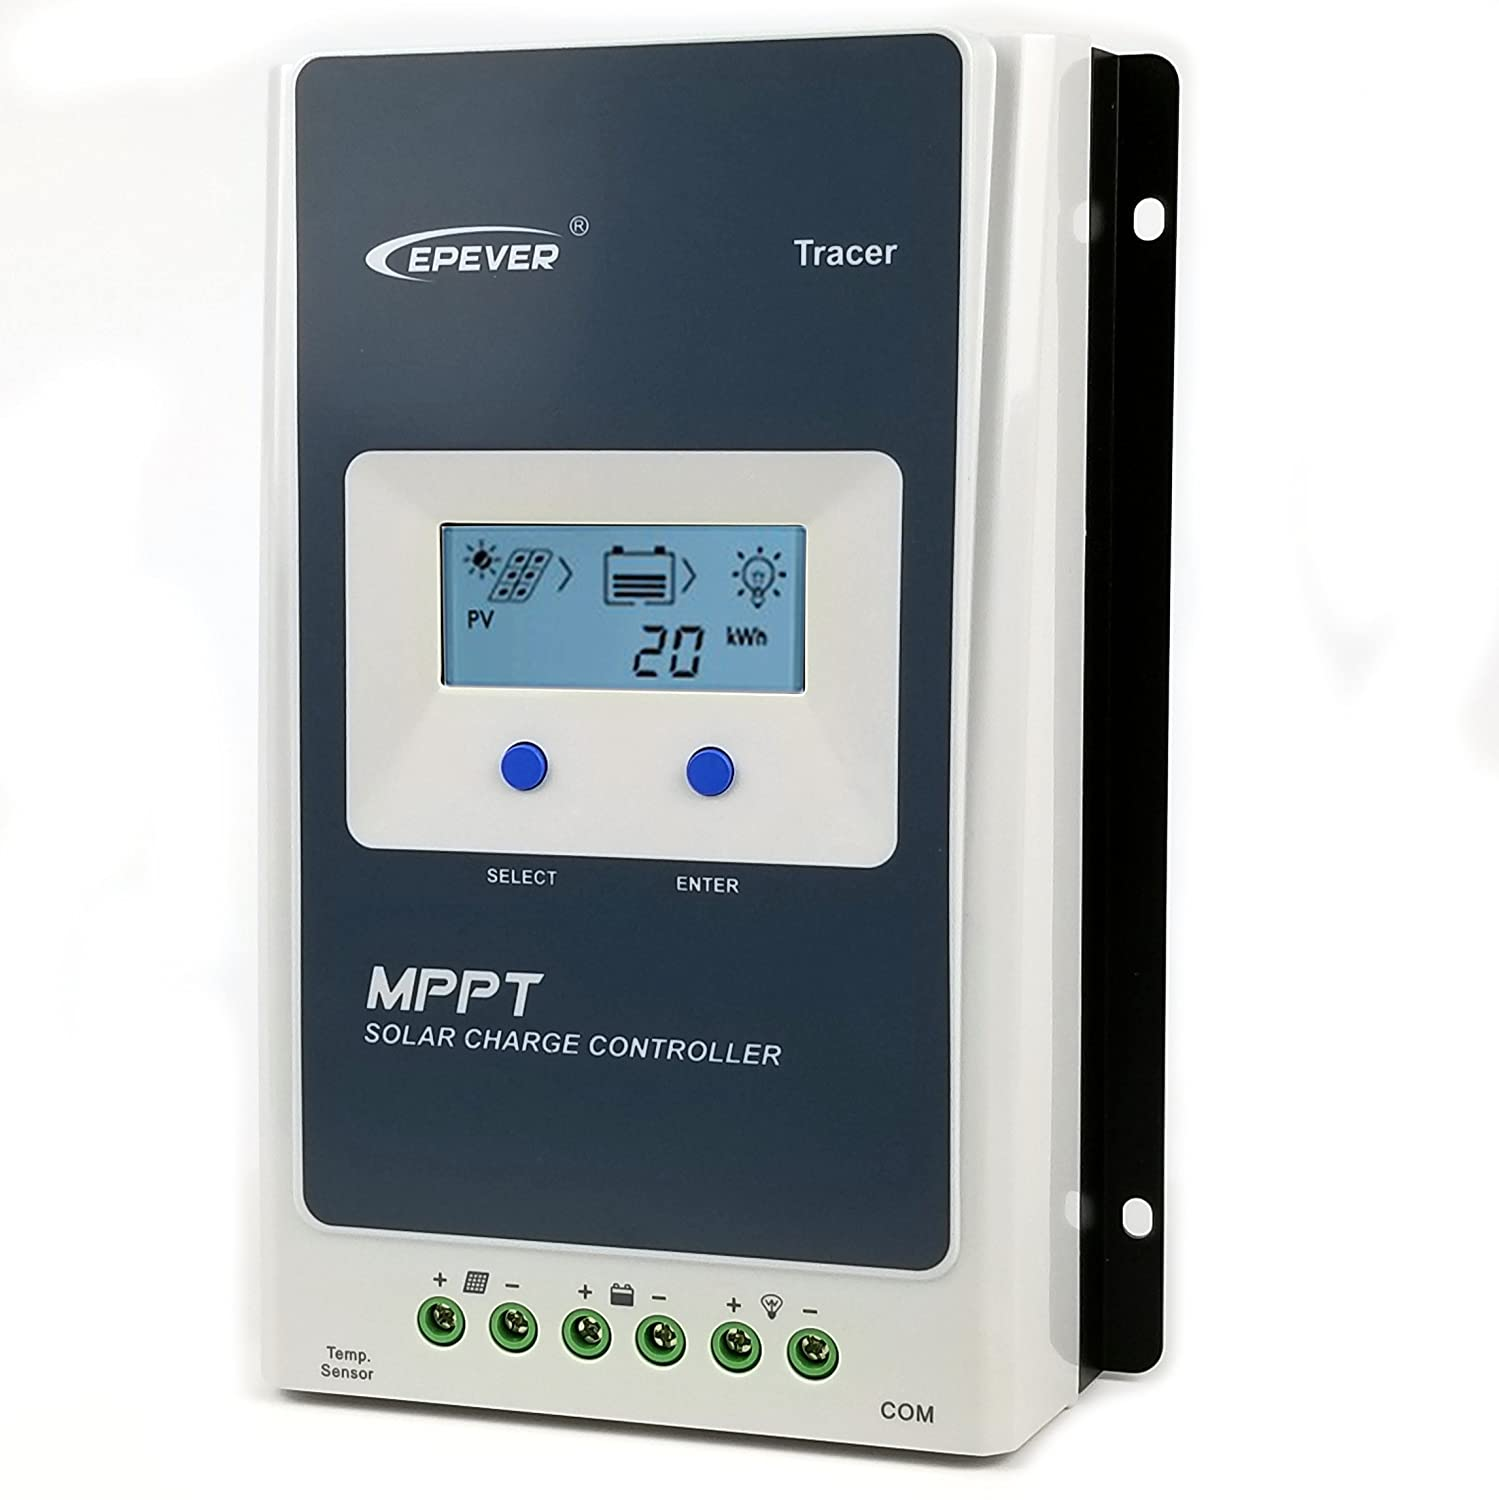 30A MPPT Solar Charge Controller 2018 100V PV Input Support Lithium Battery Charging Backlight LCD Negative Ground 12V 24V Auto 780W Solar Panel Charge Regulator Tracer 3210AN epever